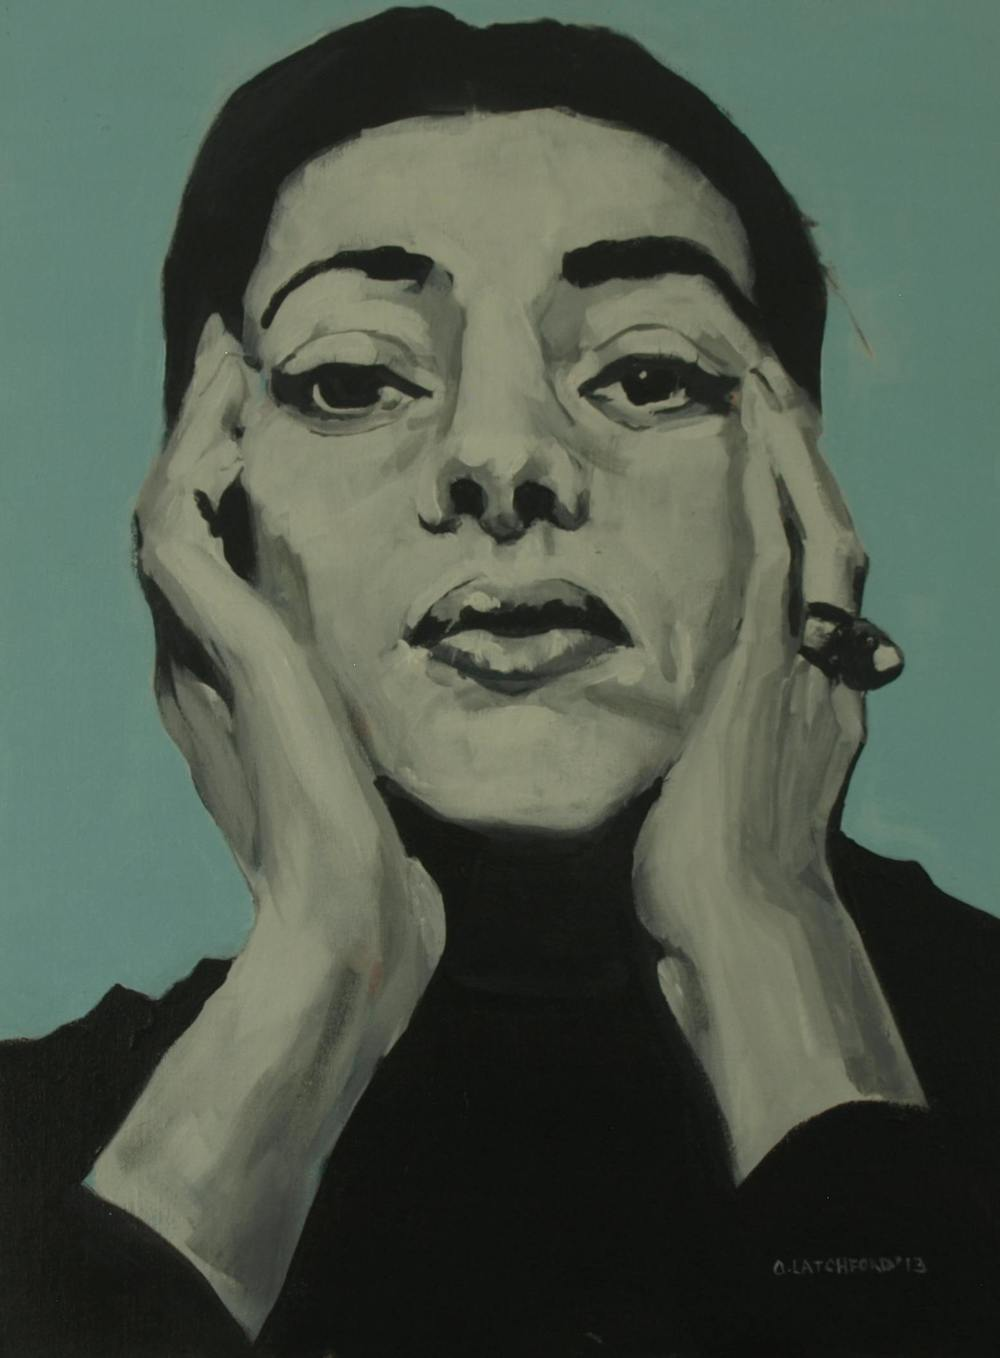 Maria, Acrylic on board, 27cm x 18cm, 2013